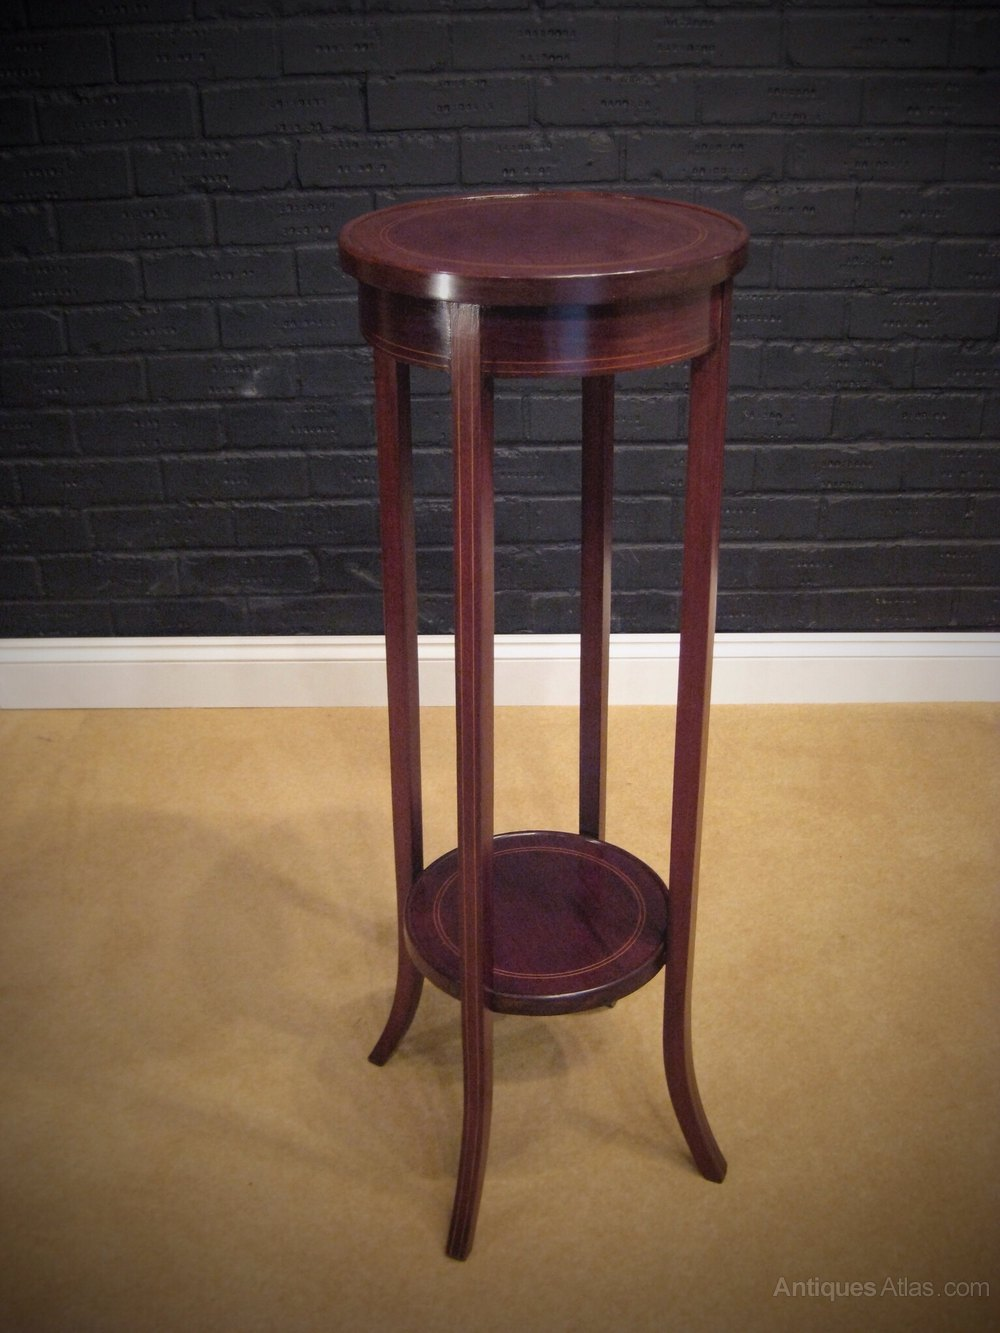 Edwardian (1901-1910) Antique Edwardian Mahogany Plant Stand